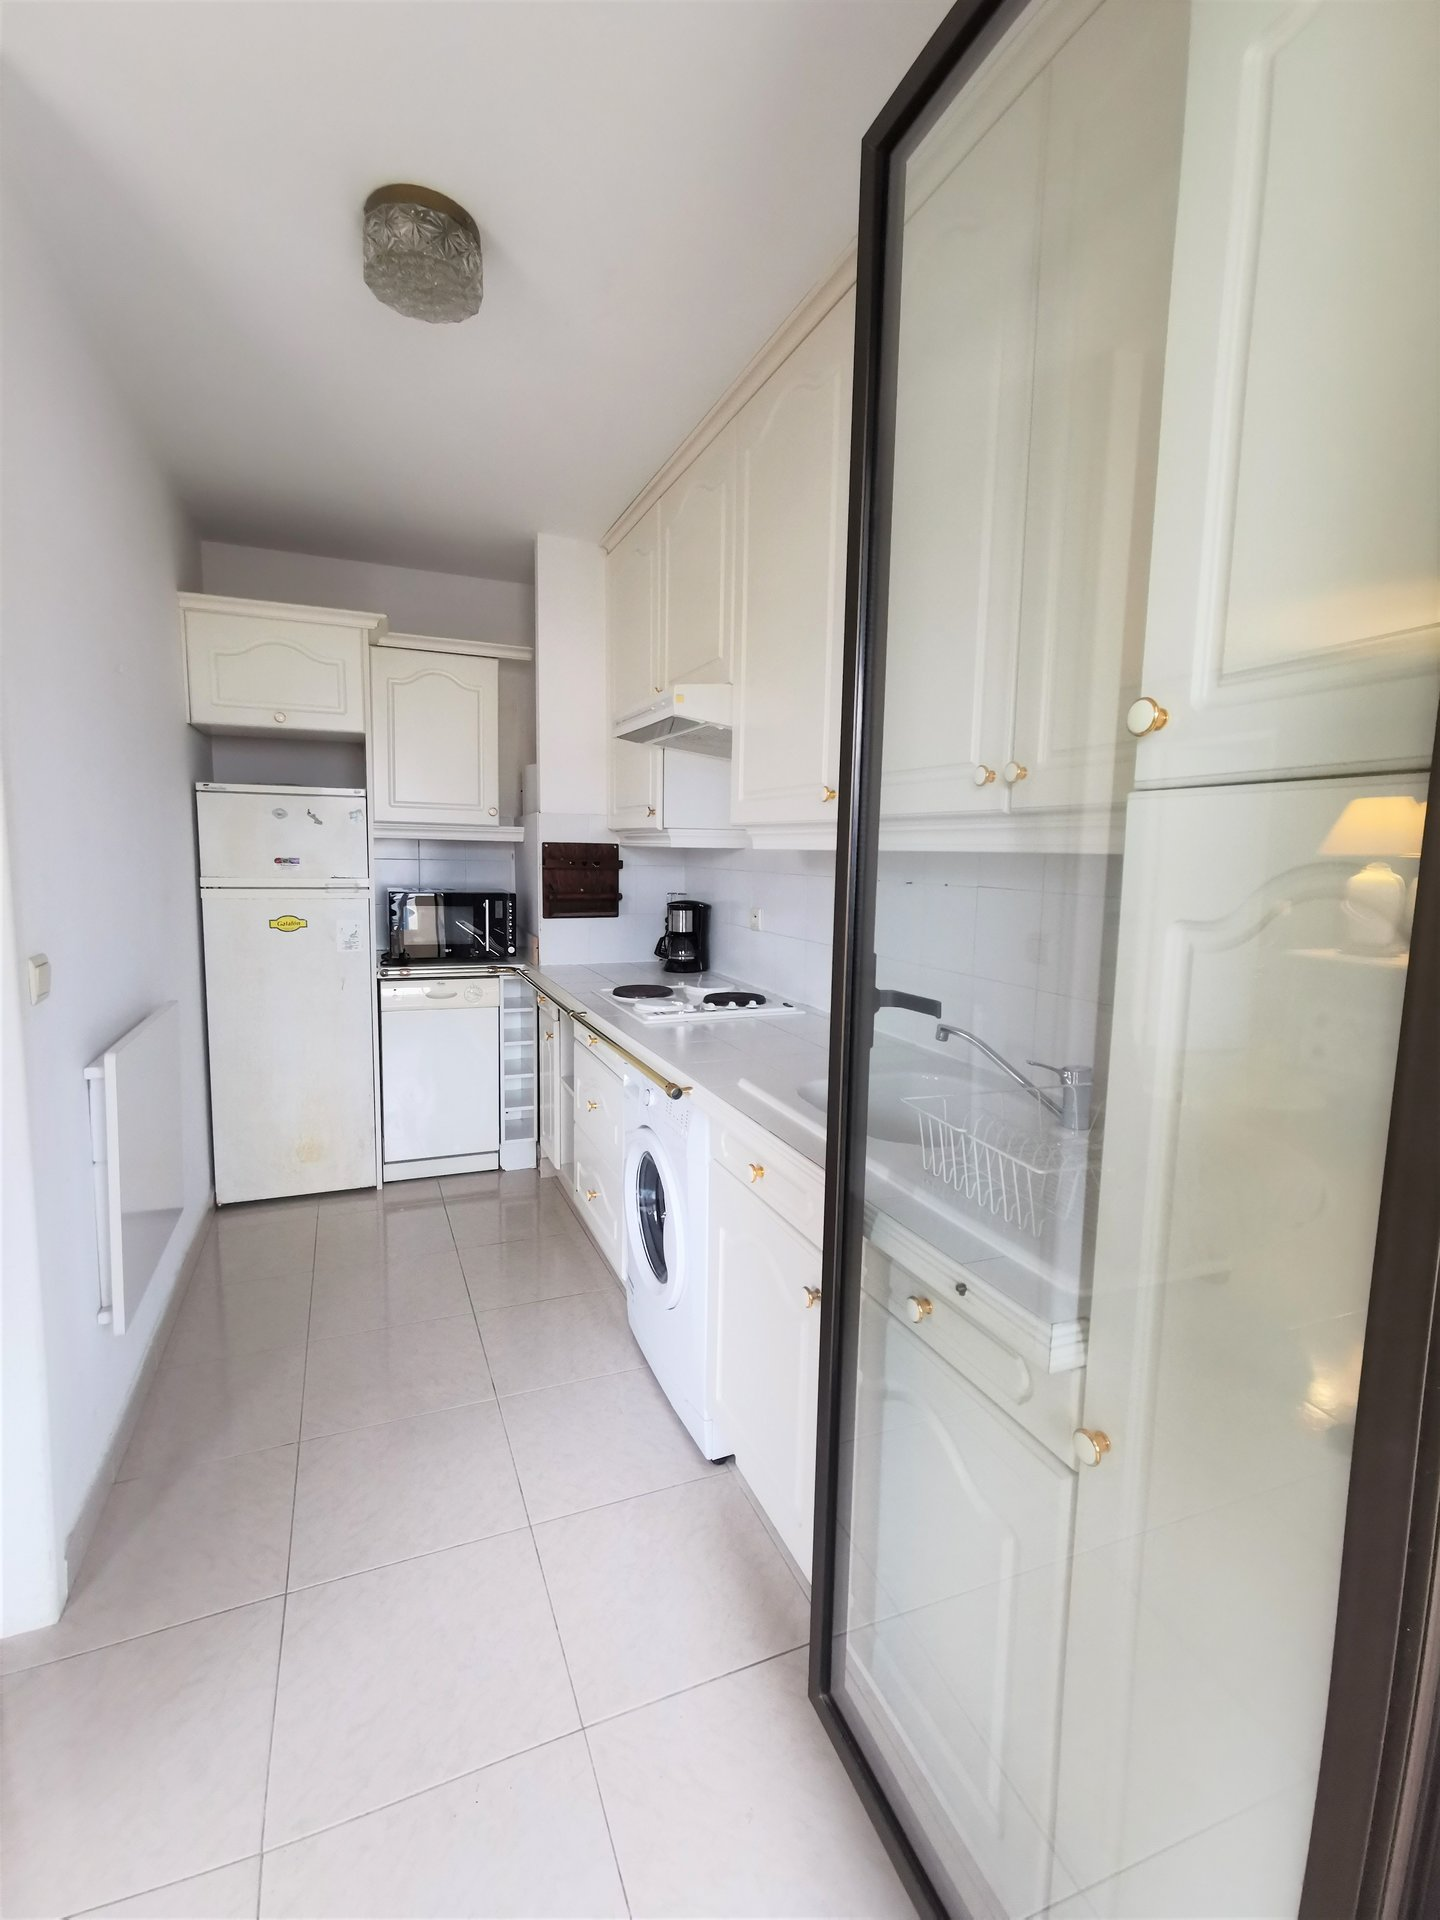 Cannes - Saint Nicolas - Nice 46m² flat with terrasse close to la Croisette and beaches